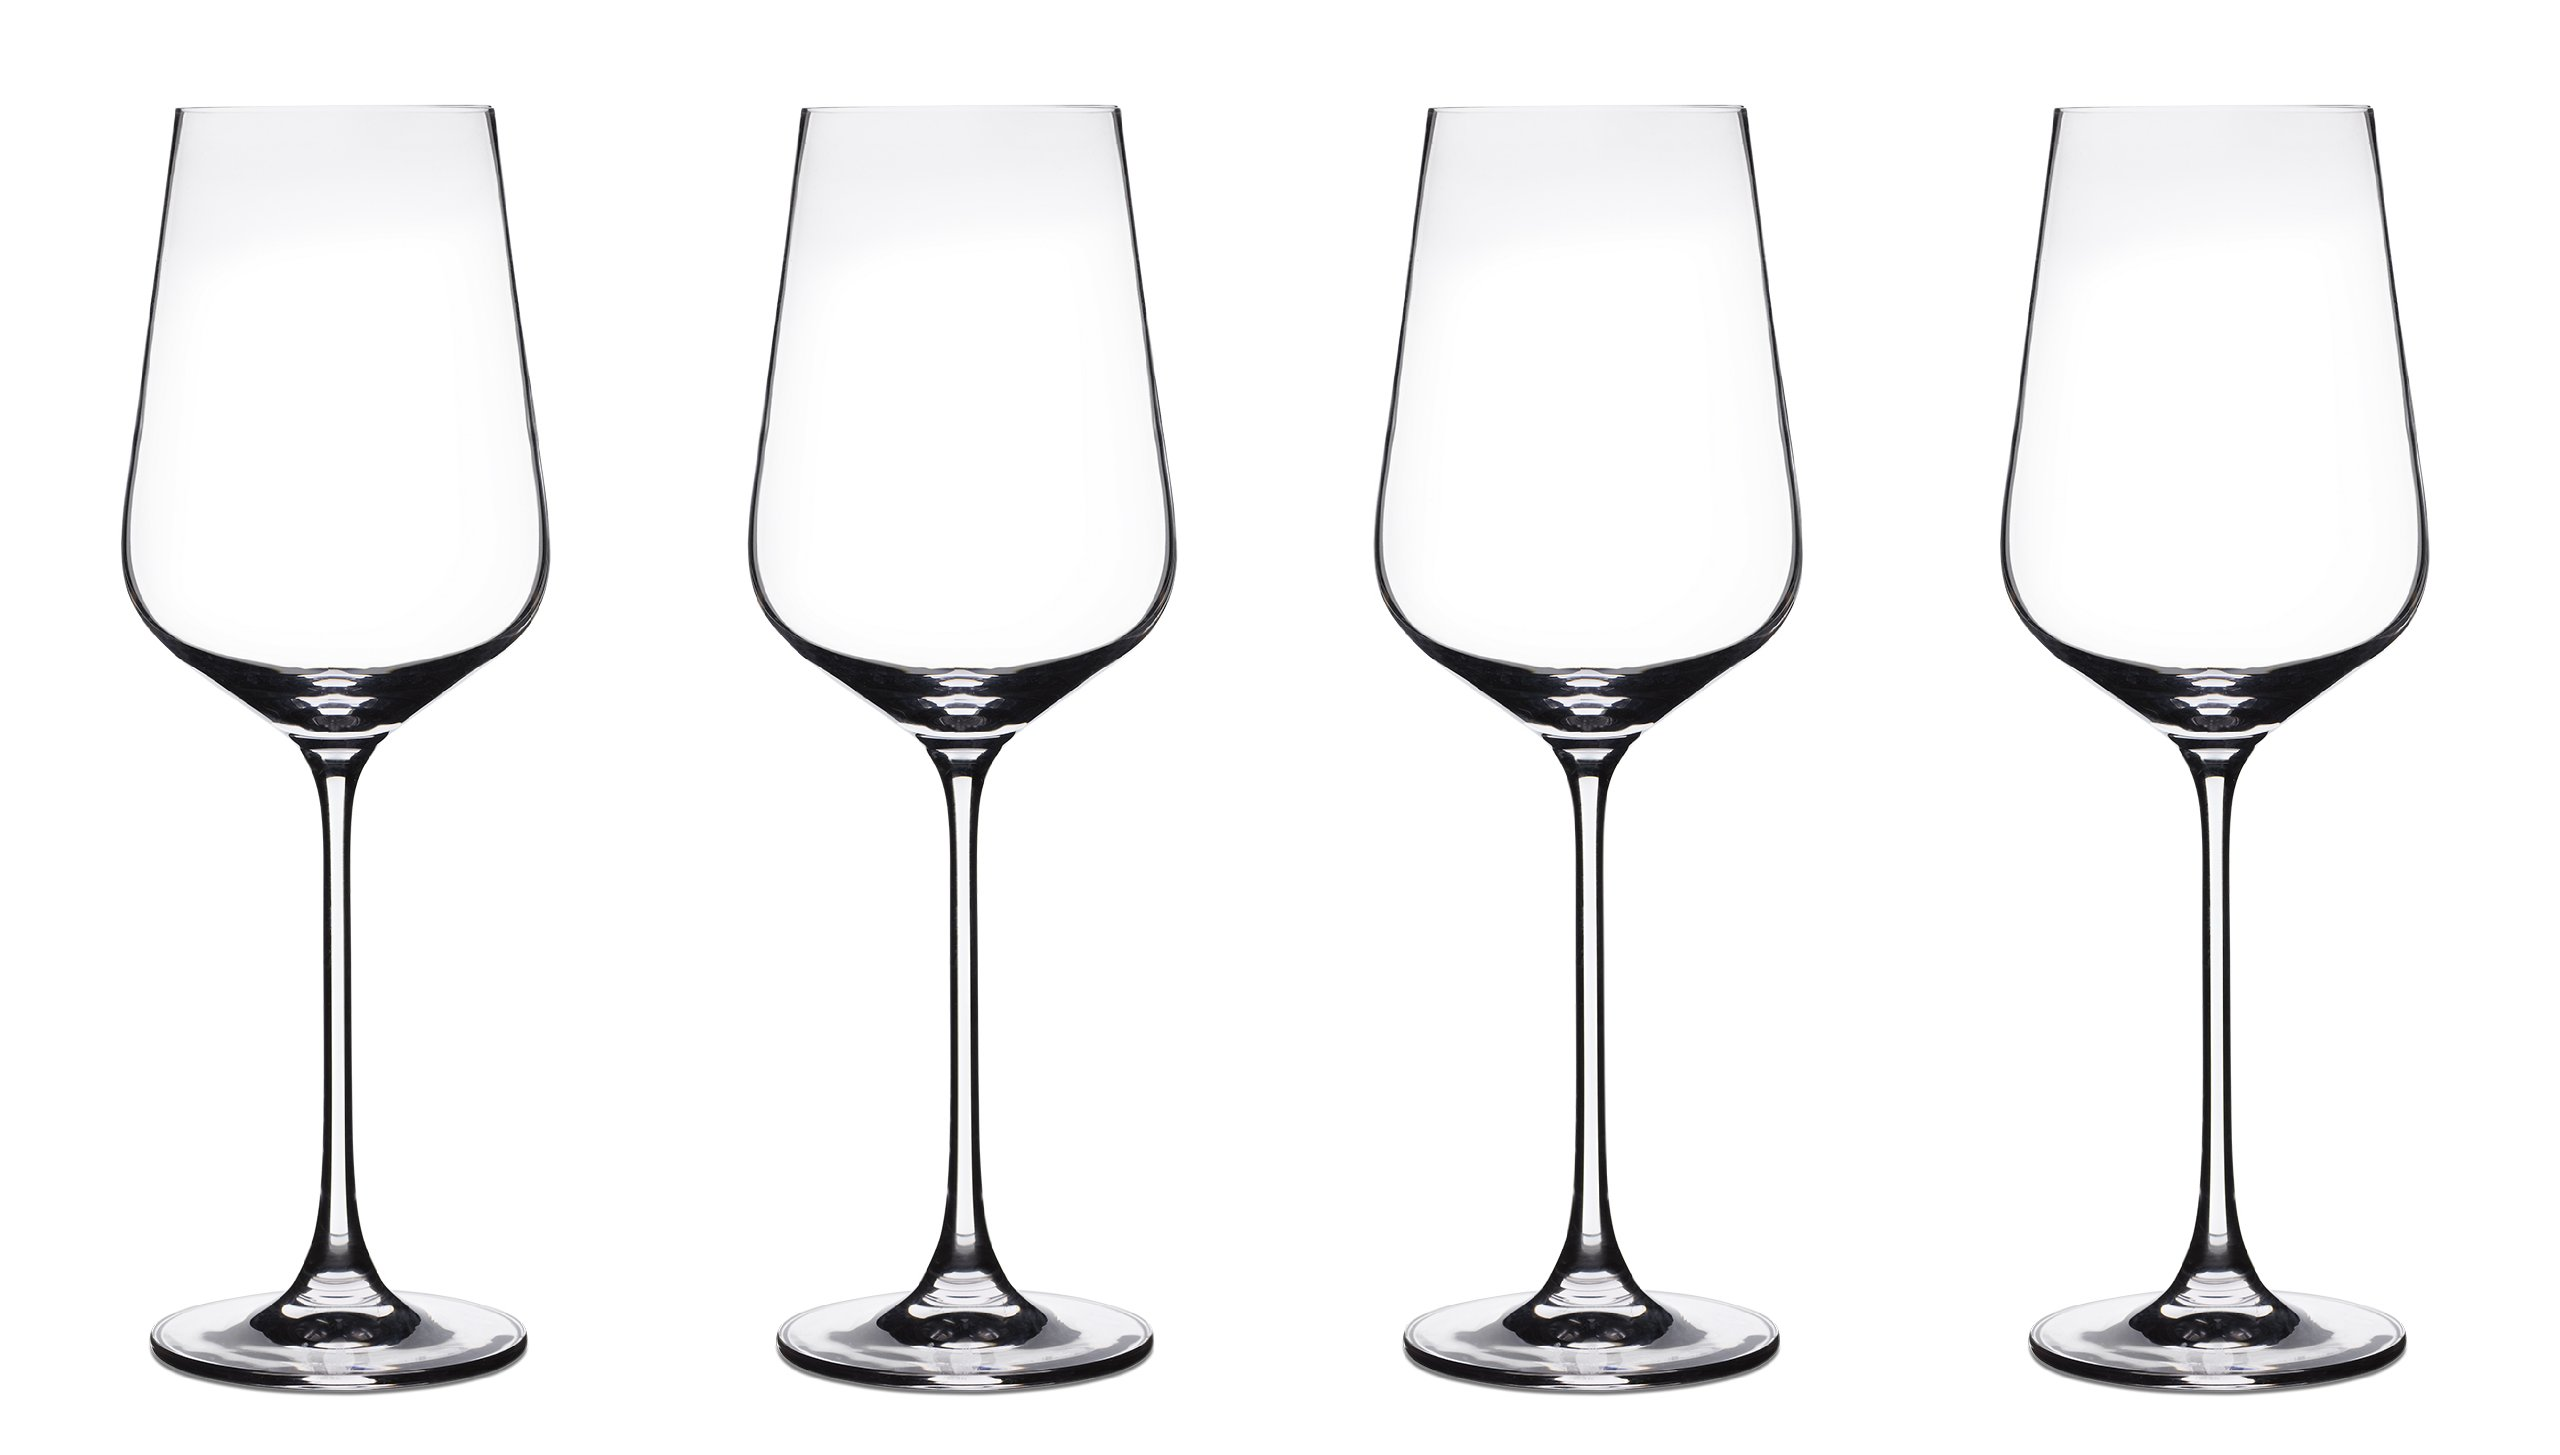 Cuisinart CGE-01-S4AP Elite Vivere Collection All Purpose/Red Wine Glasses, Set of 4